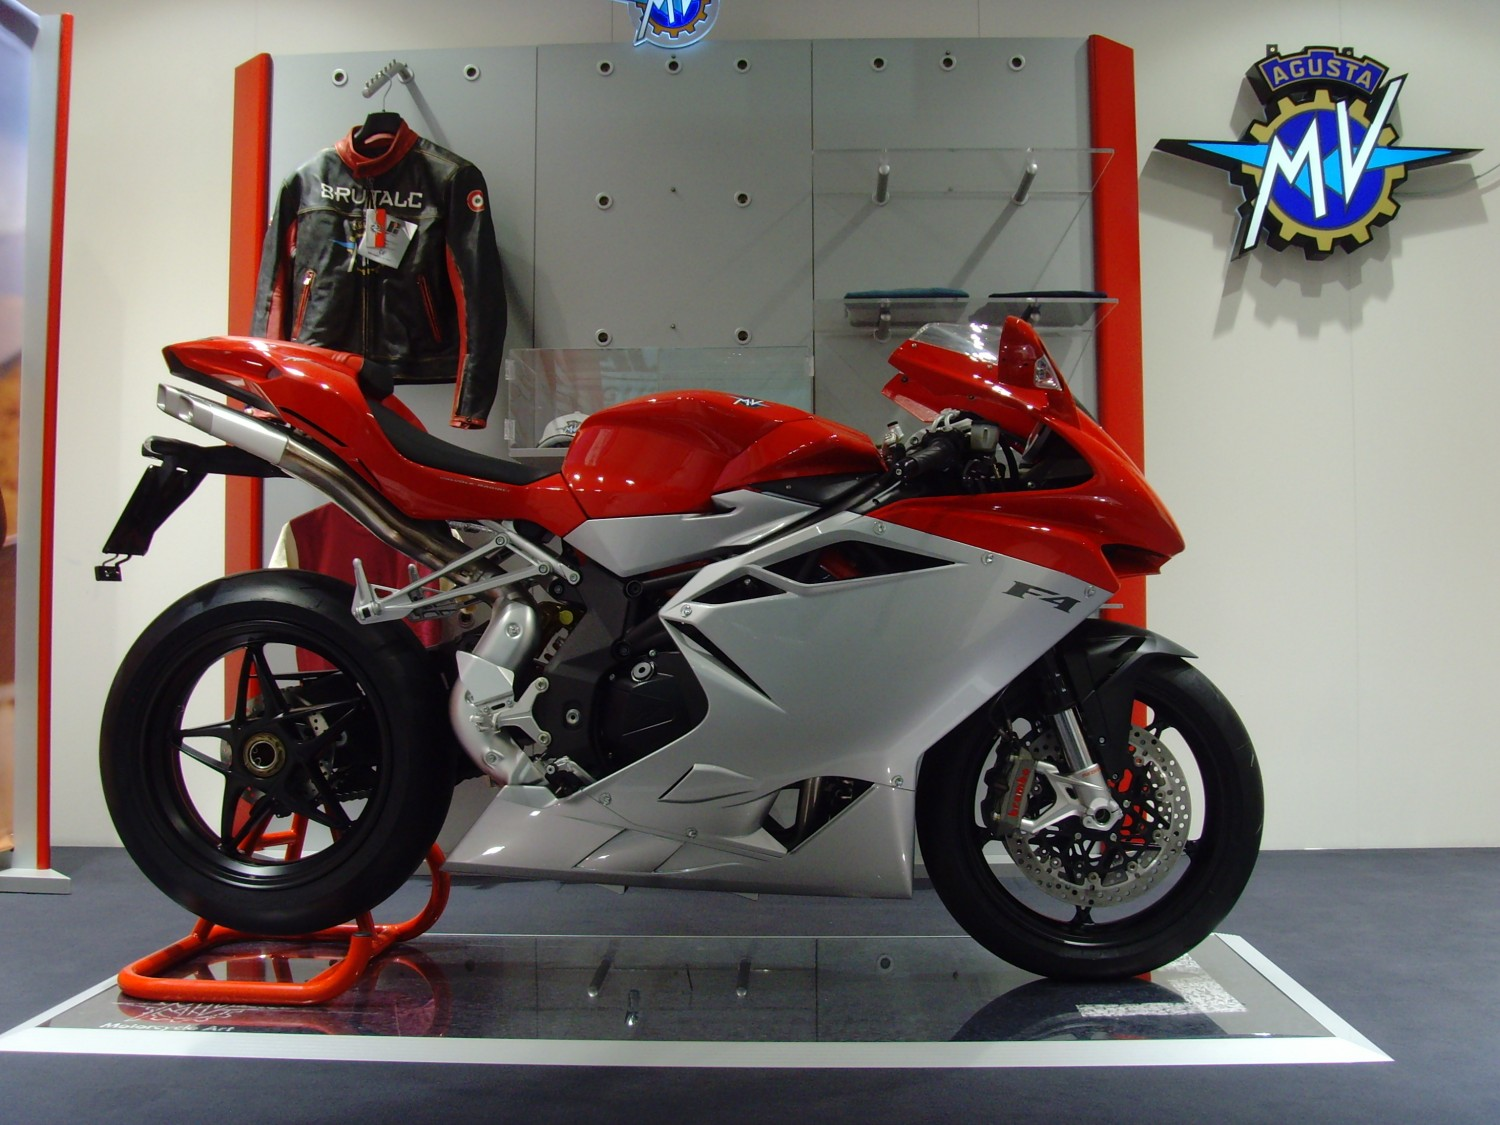 mv-agusta-f4cc-120000_expensive-motorcycles